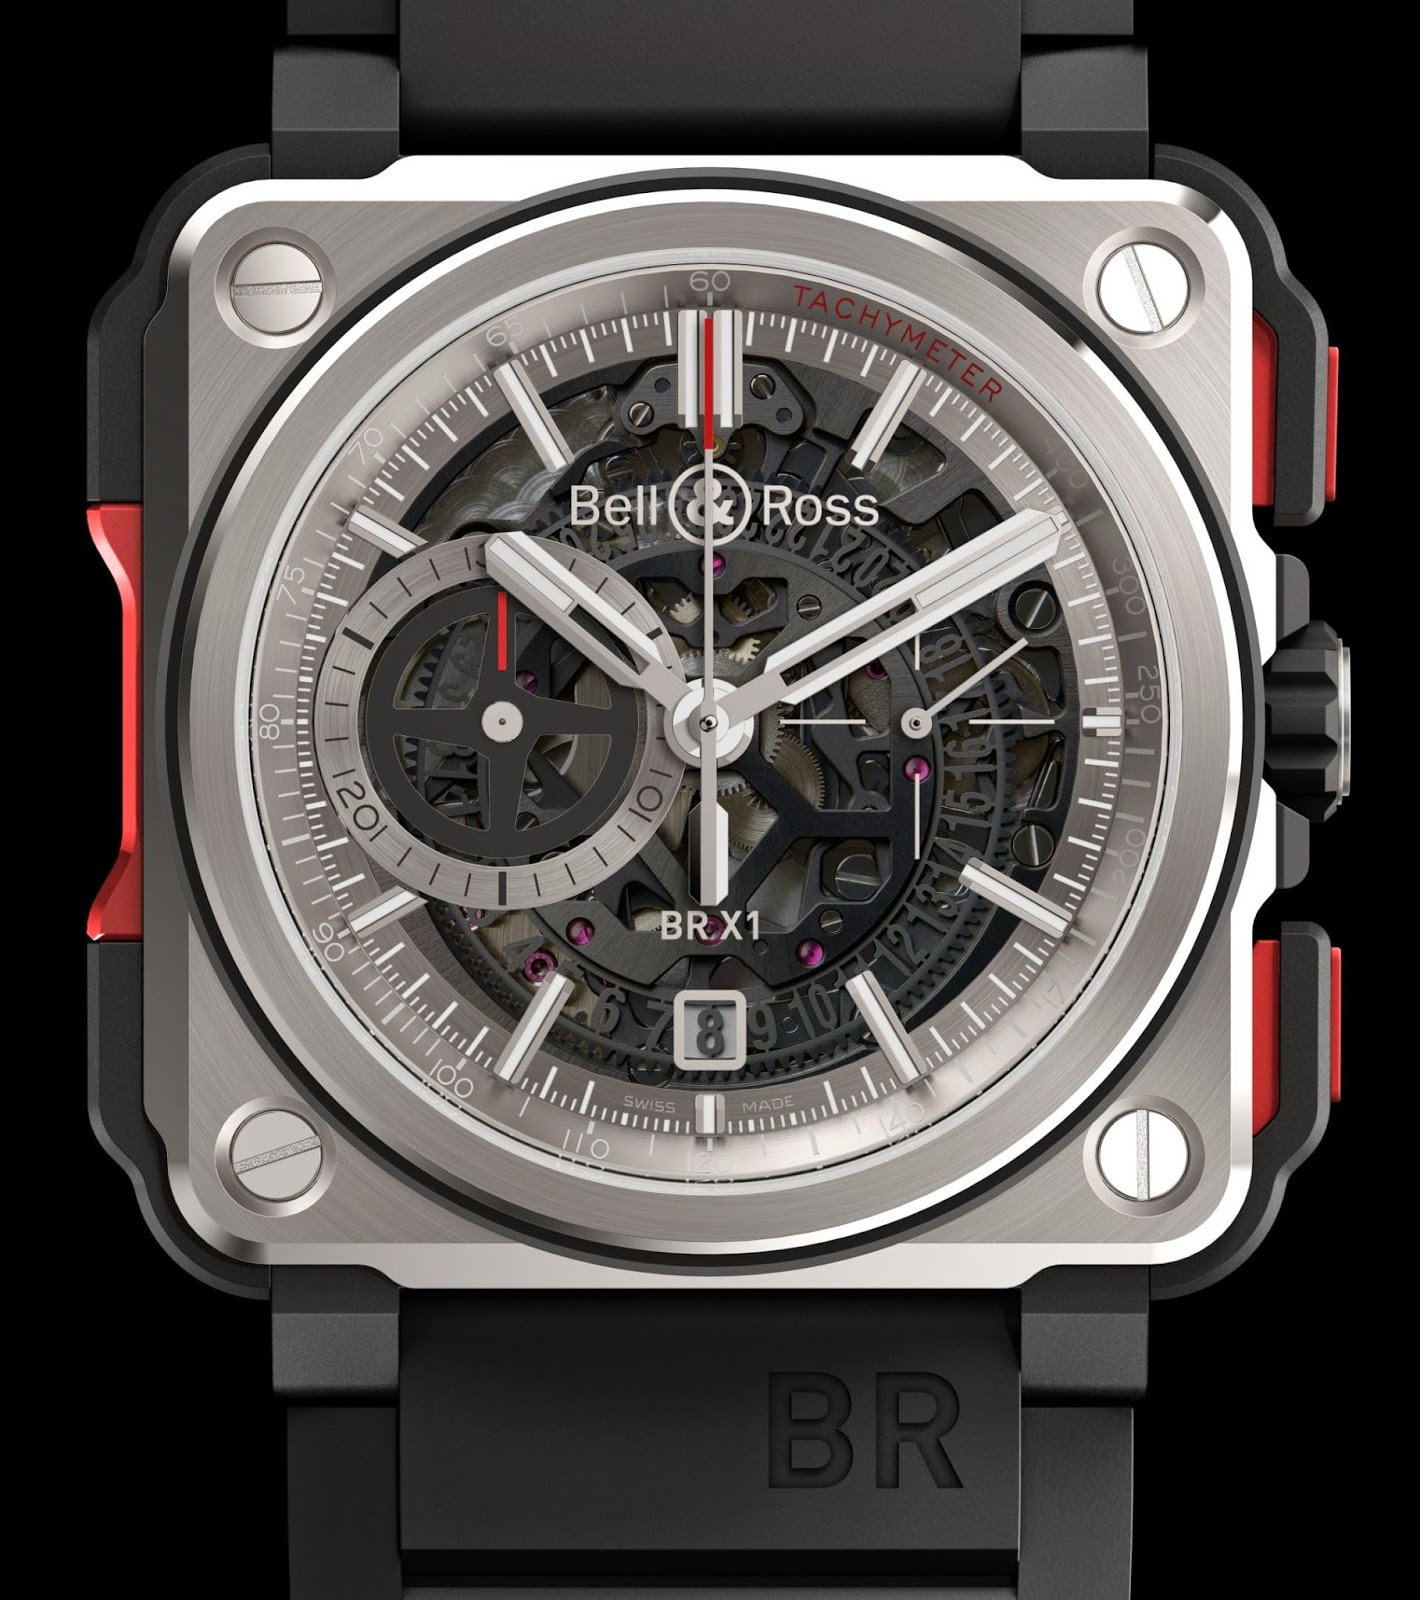 Bell & Ross BR-X1 Skeleton Chronograph Limited Edition